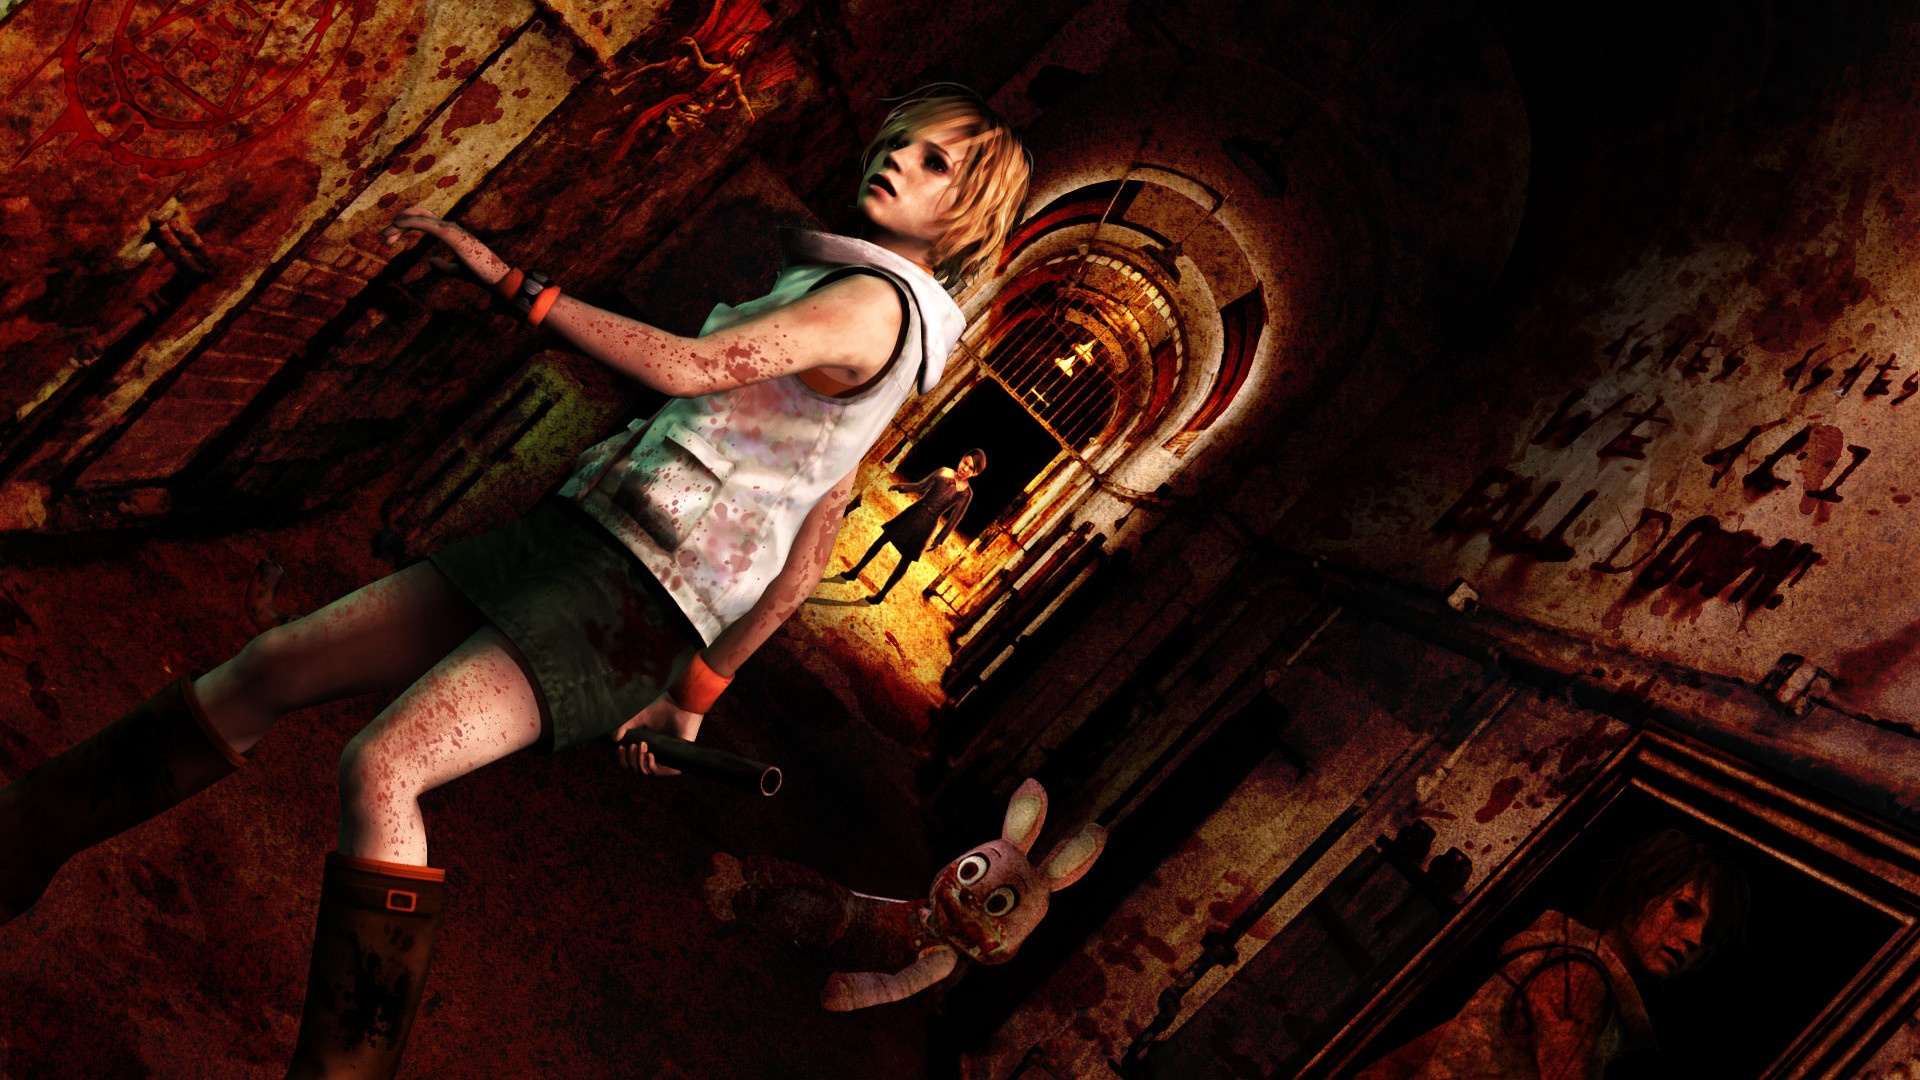 1920x1080 Video Game - Silent Hill 3 Silent Hill Horror Creepy Spooky Scary Wallpaper